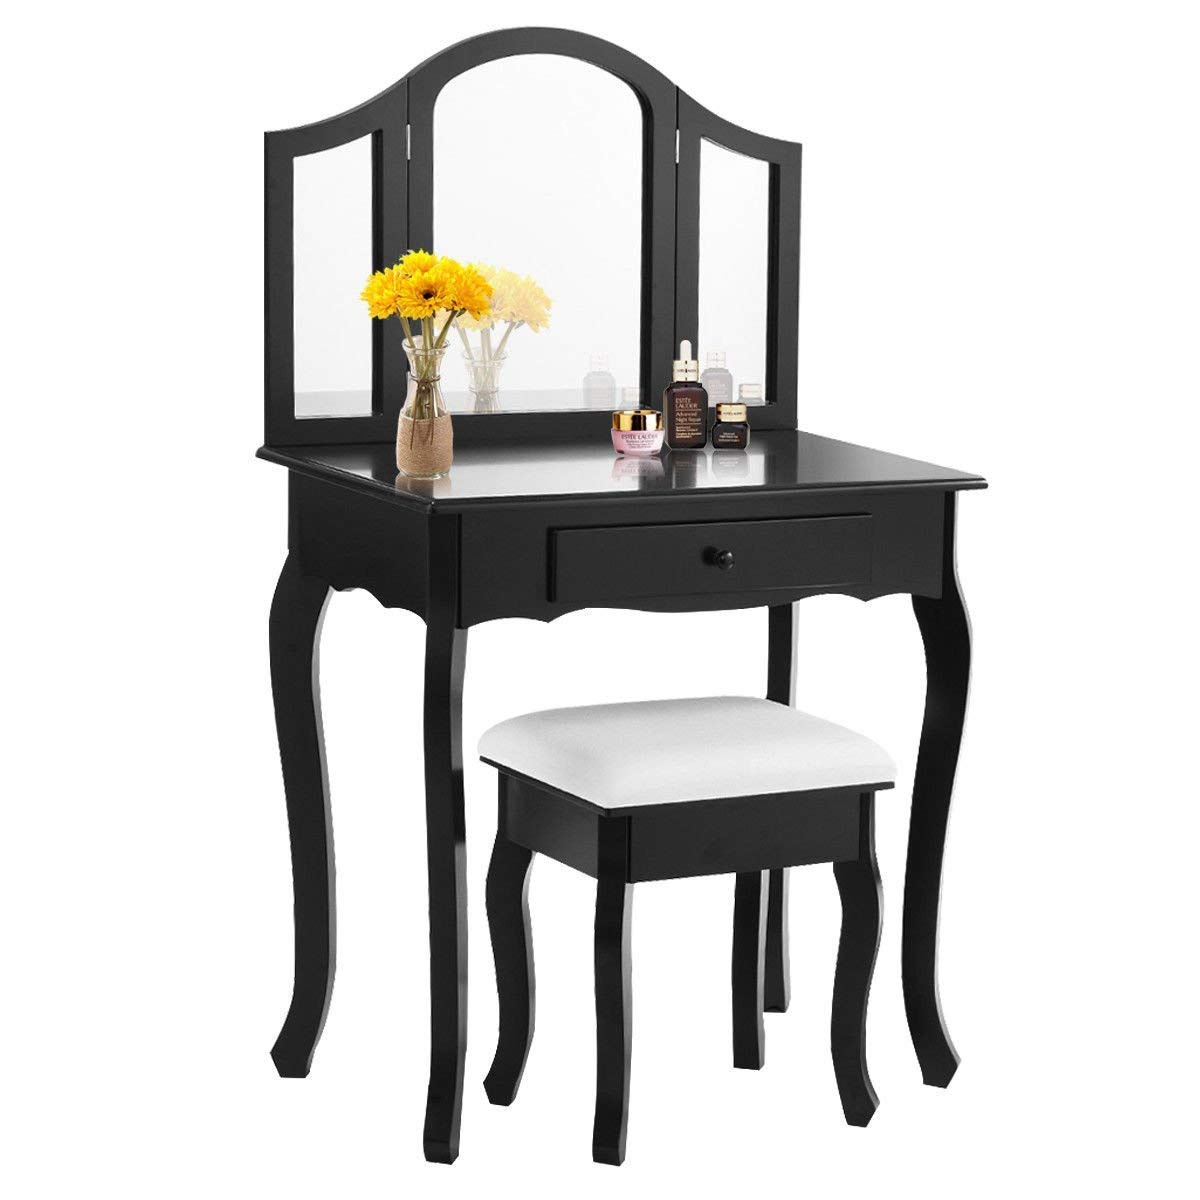 Amazon com casart bathroom vanity makeup table set w tri folding mirror cushioned stool dressing table black kitchen dining